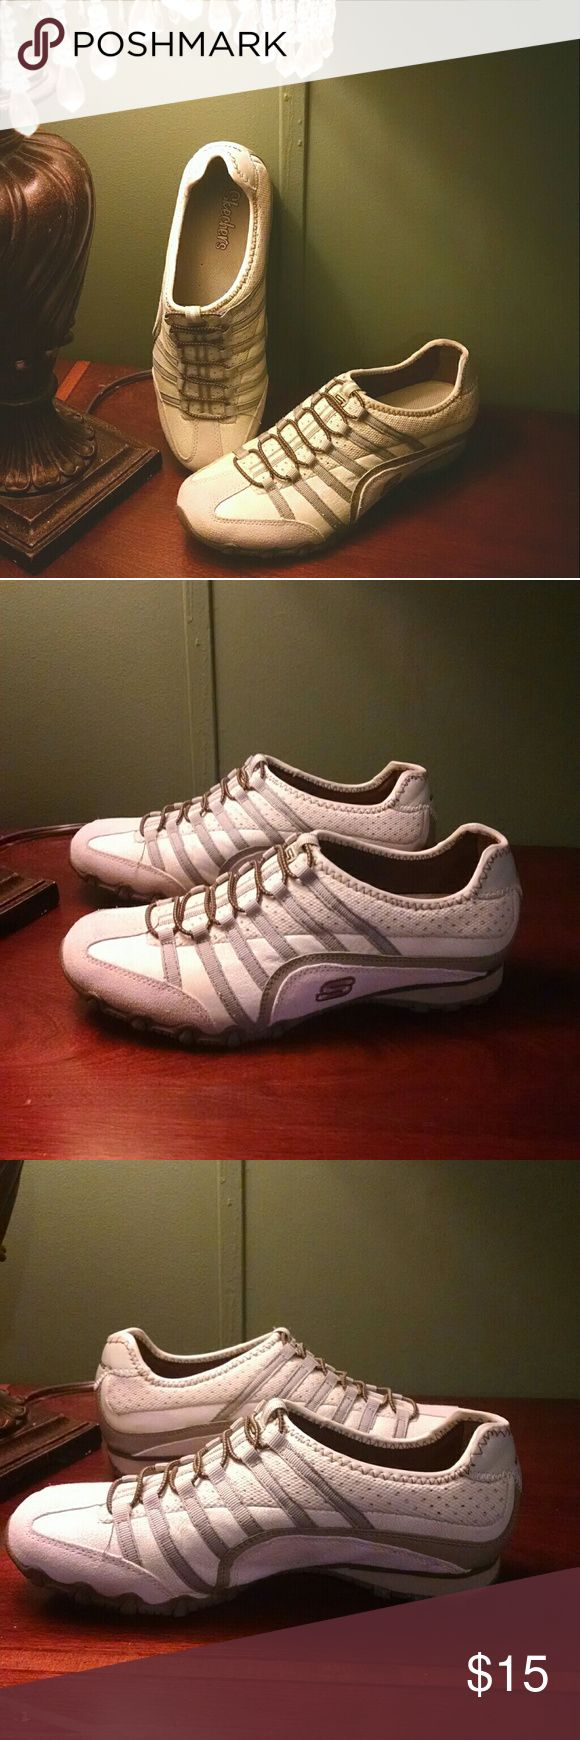 Skechers Slip On These cute Skechers slip on shoes are a size 8 and made of real leather. They have only been worn one time and are in excellent condition! Super comfortable and have great support. Skechers Shoes Sneakers